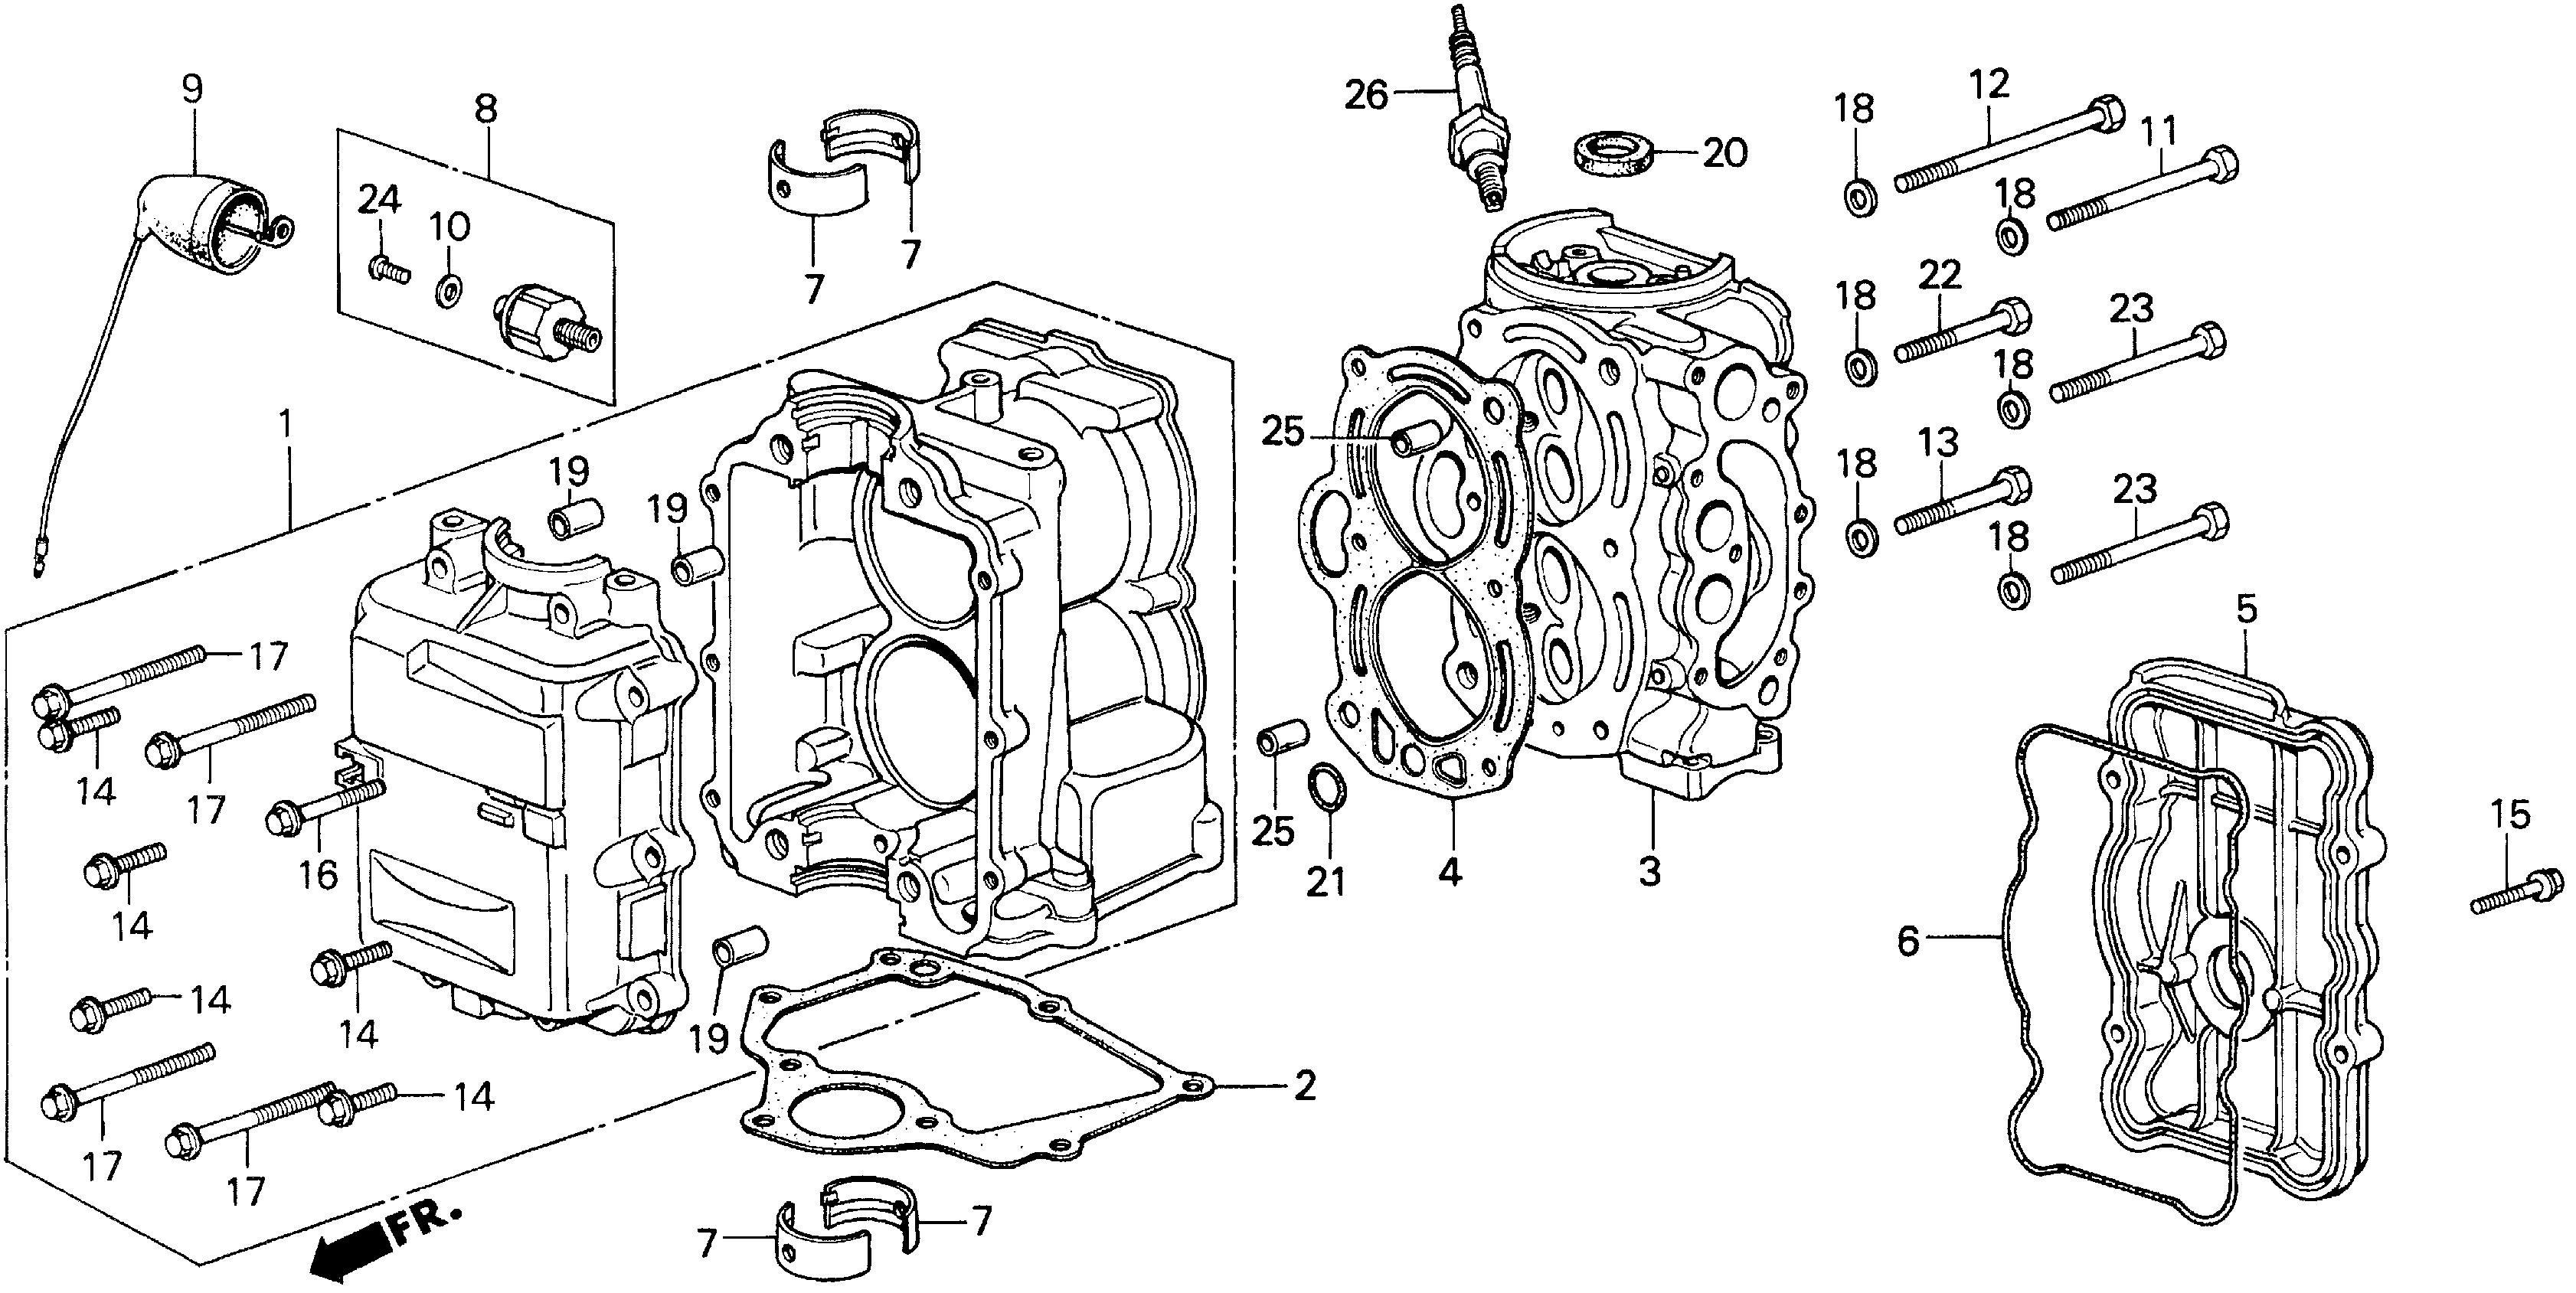 honda engine parts diagram